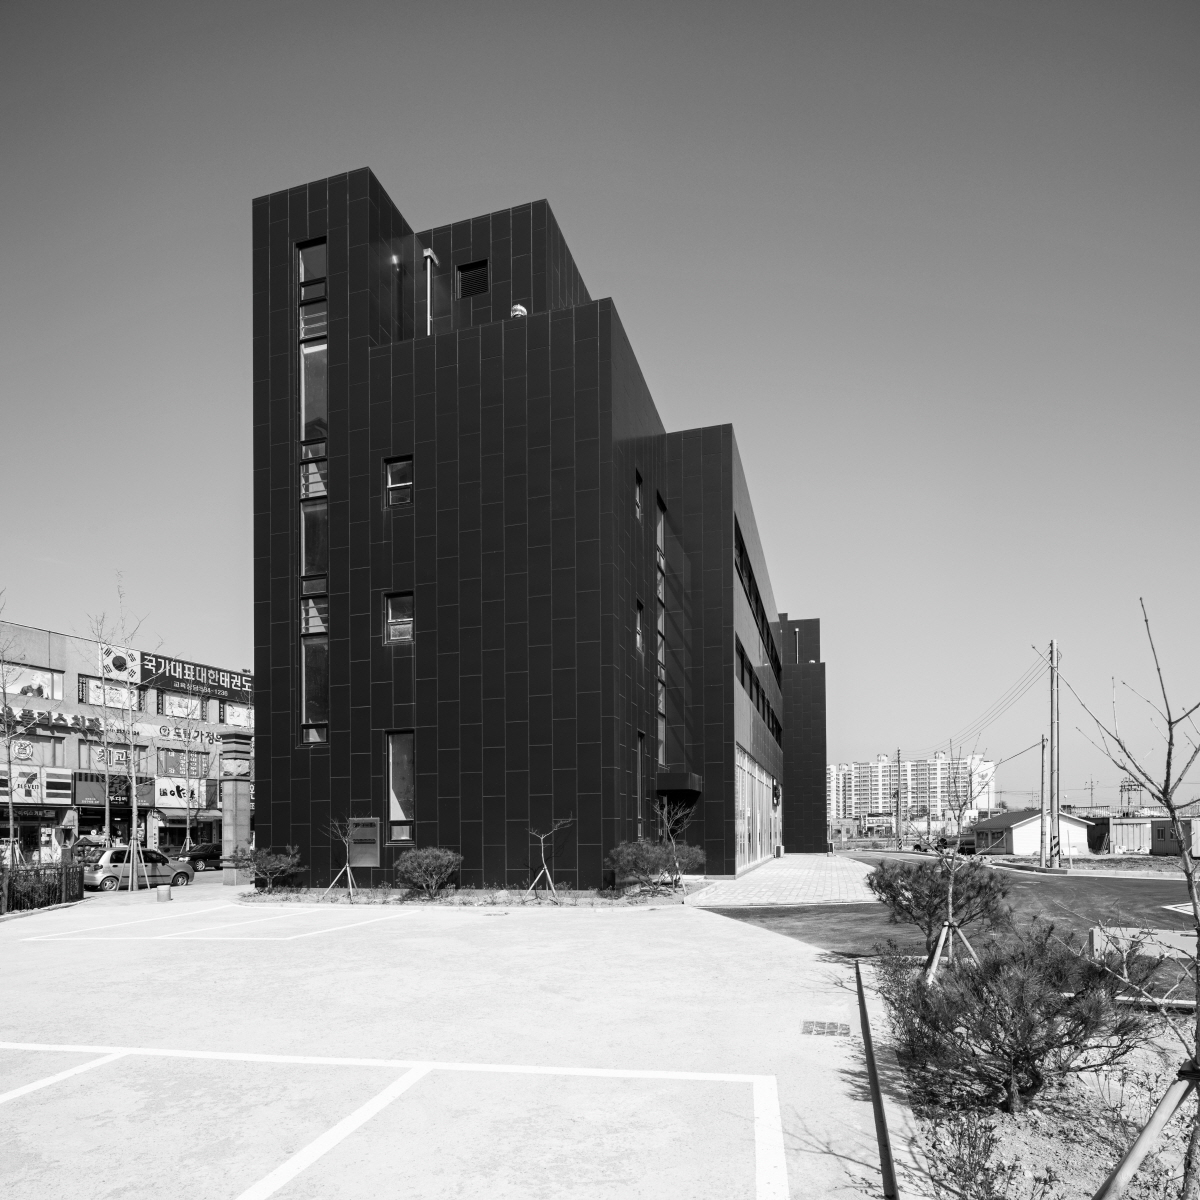 06.side view of the second building_Photo by Jungmin Seok